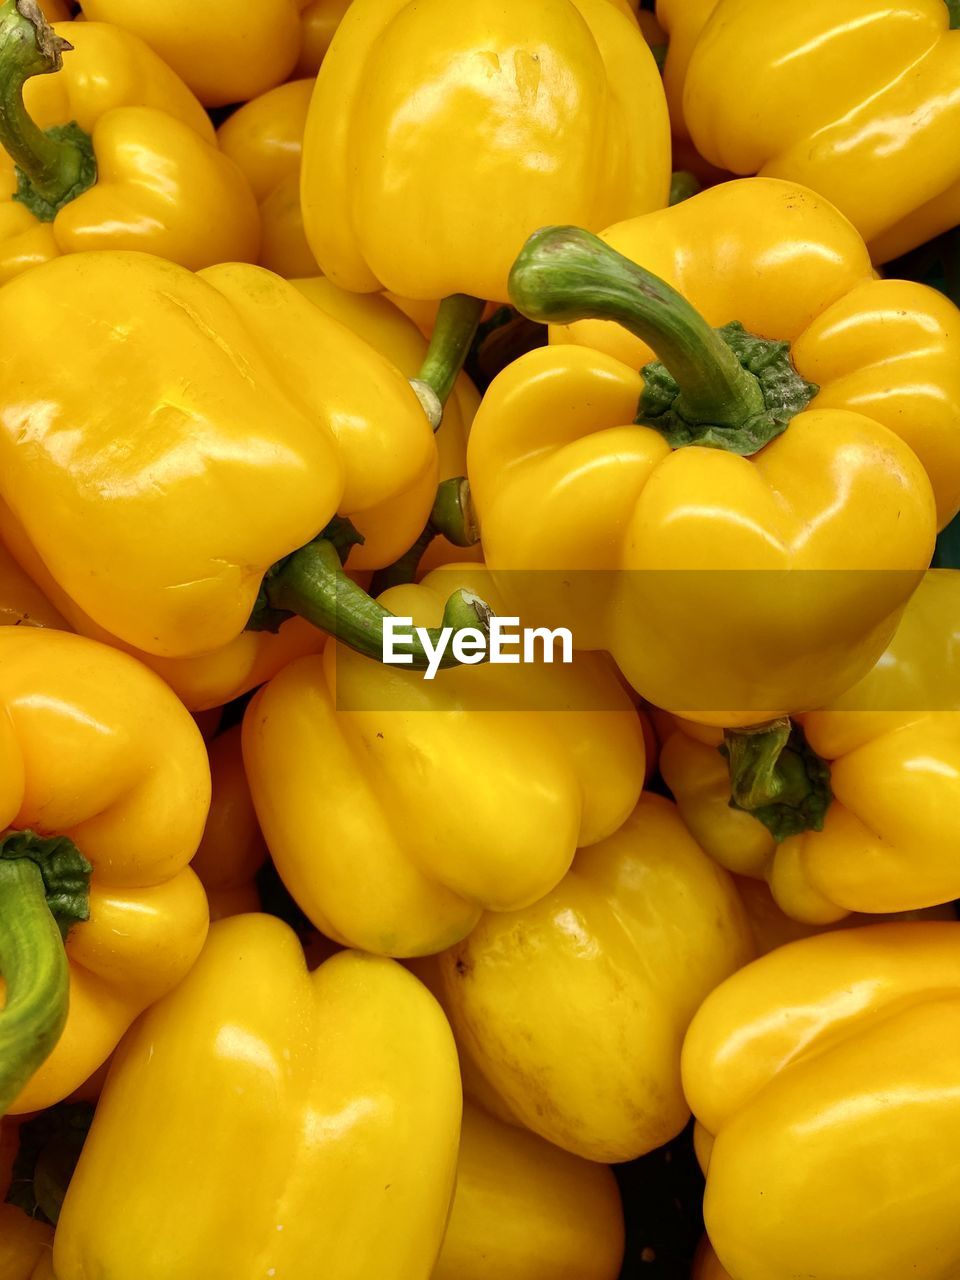 Close-up of yellow bell peppers for sale in market